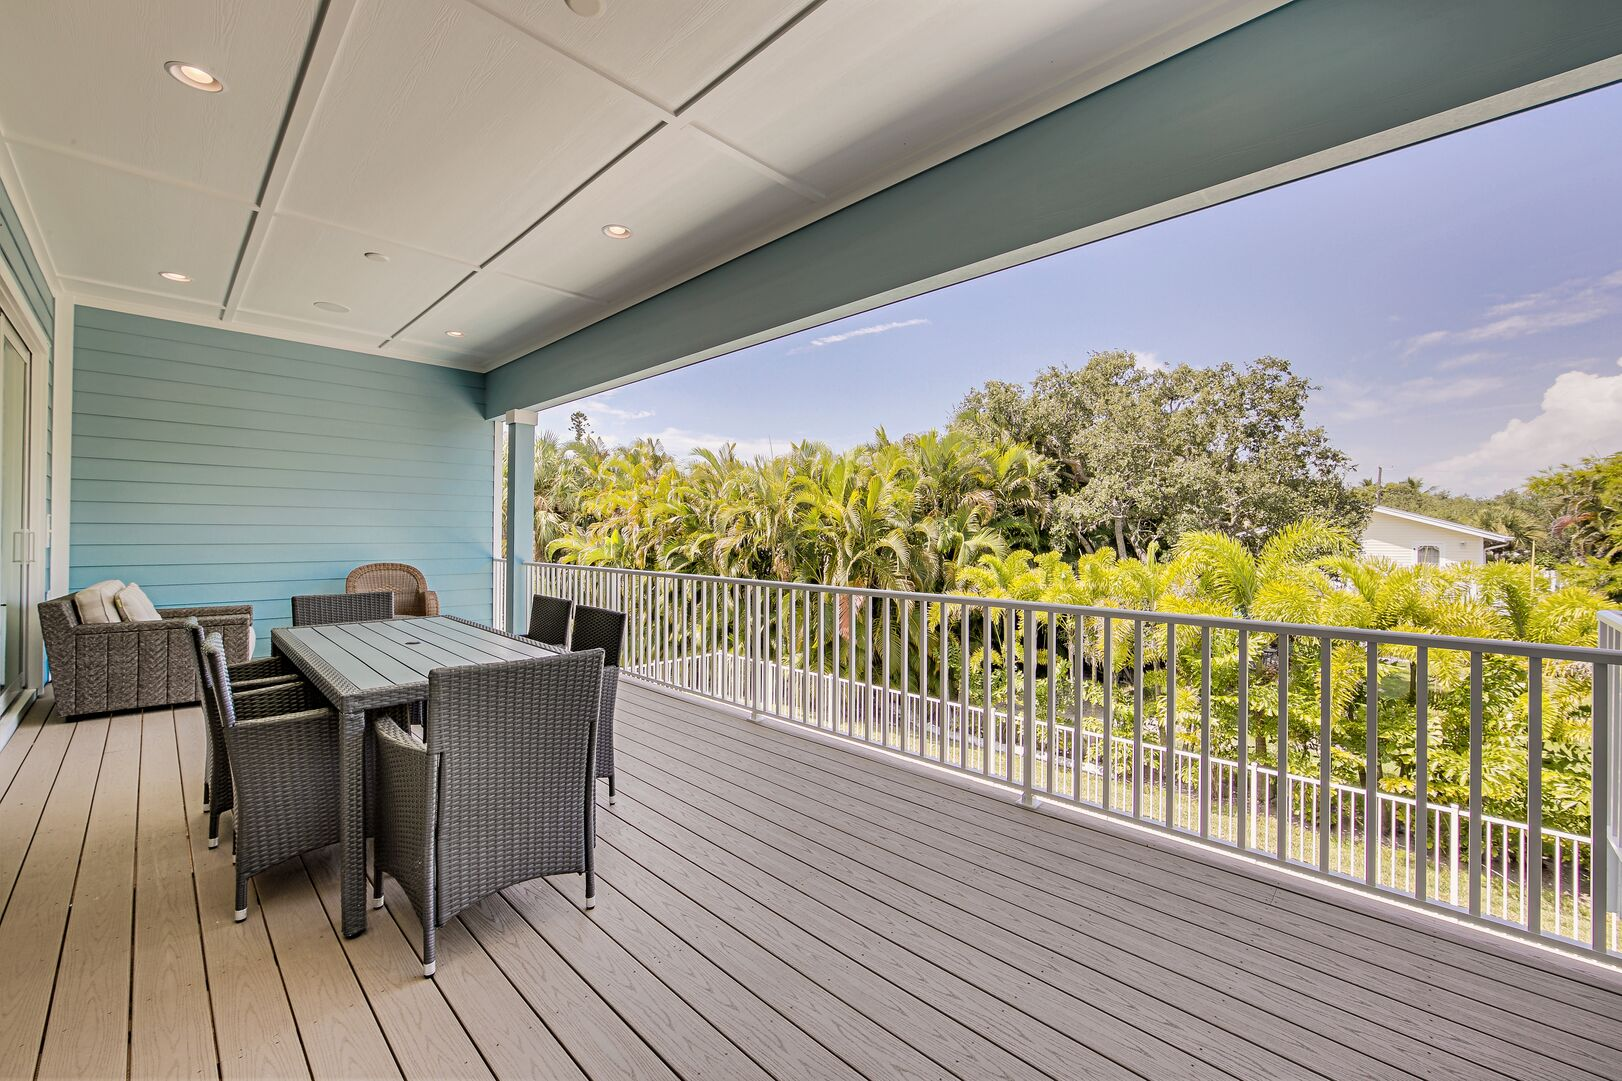 This vacation rental near Fort Myers Beach has outdoor seating for six